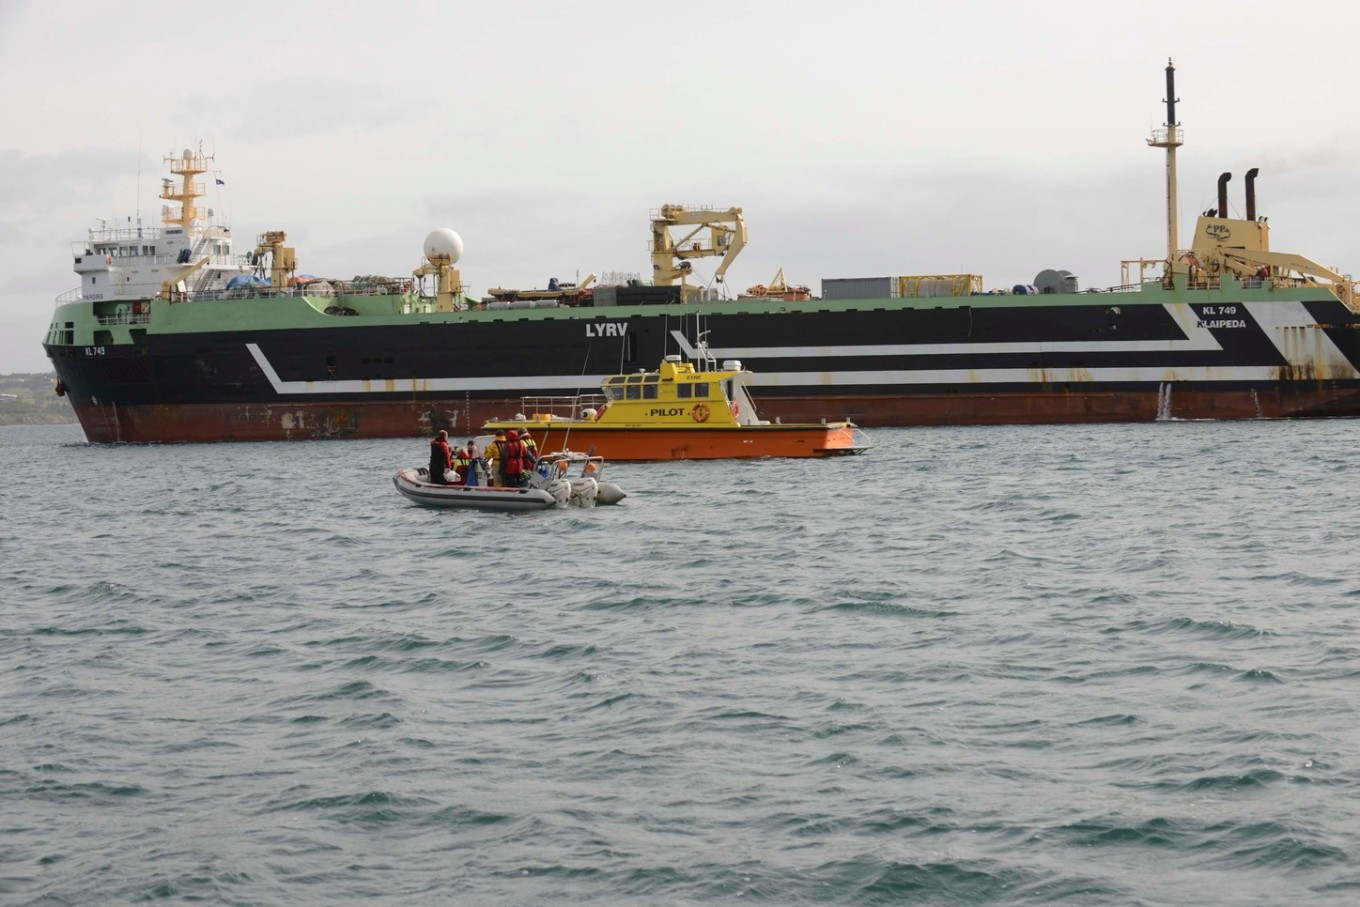 SUPER TRAWLER MARGIRIS ARRIVAL